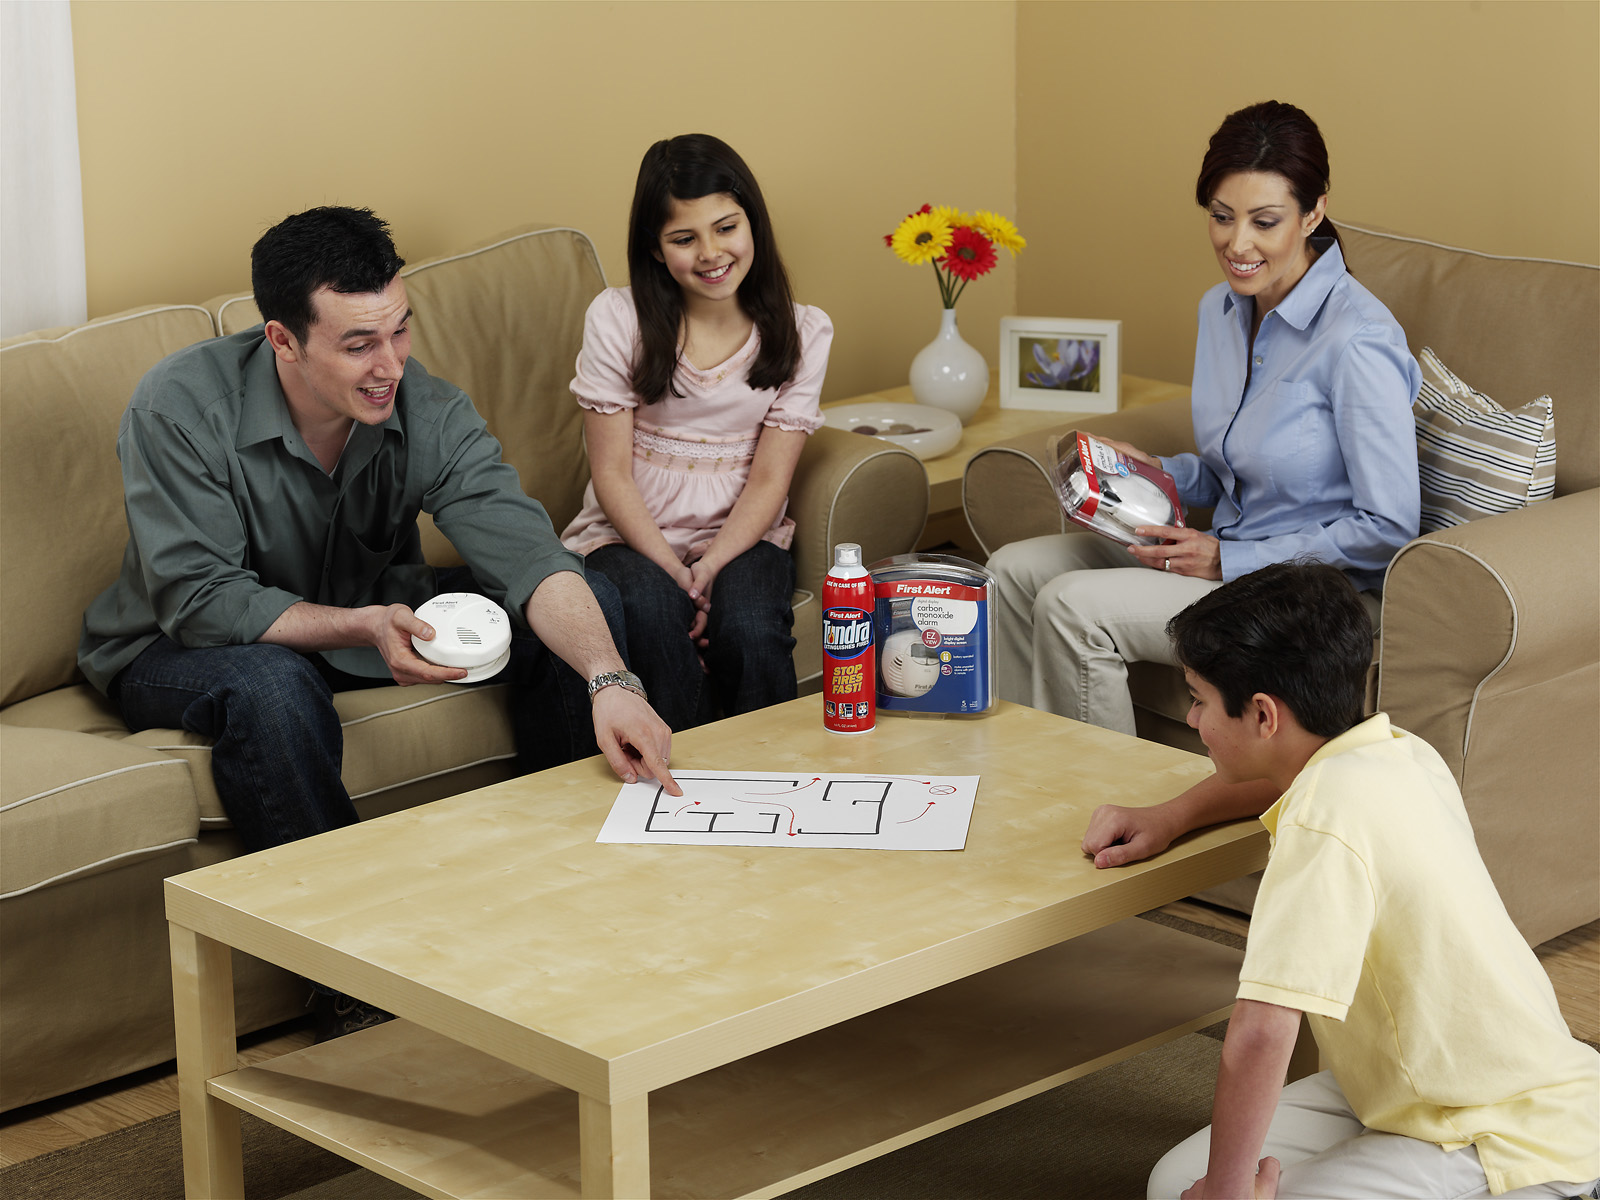 National Preparedness Month - 5 Things Your Family Should Know